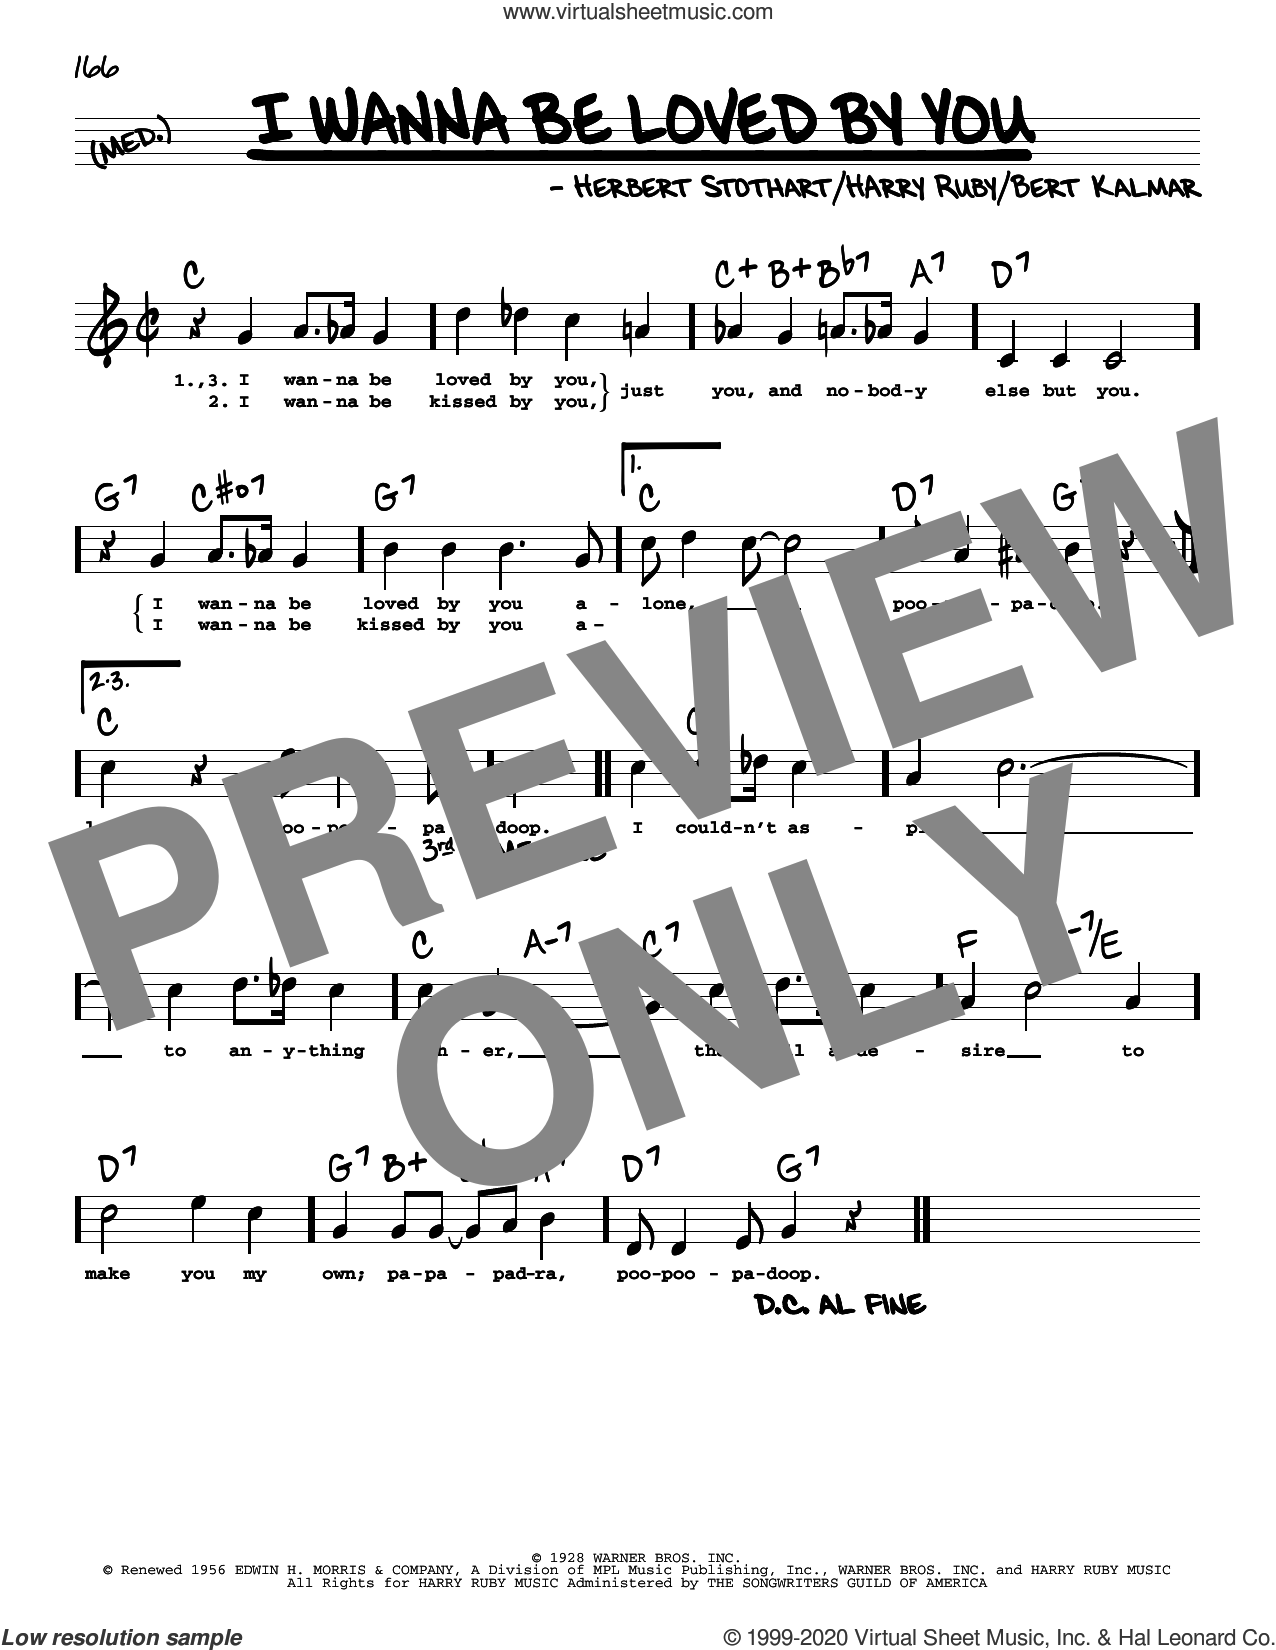 I Wanna Be Loved By You (High Voice) (from Good Boy) sheet music for voice and other instruments (high voice) by Bert Kalmar, Harry Ruby and Herbert Stothart, intermediate skill level